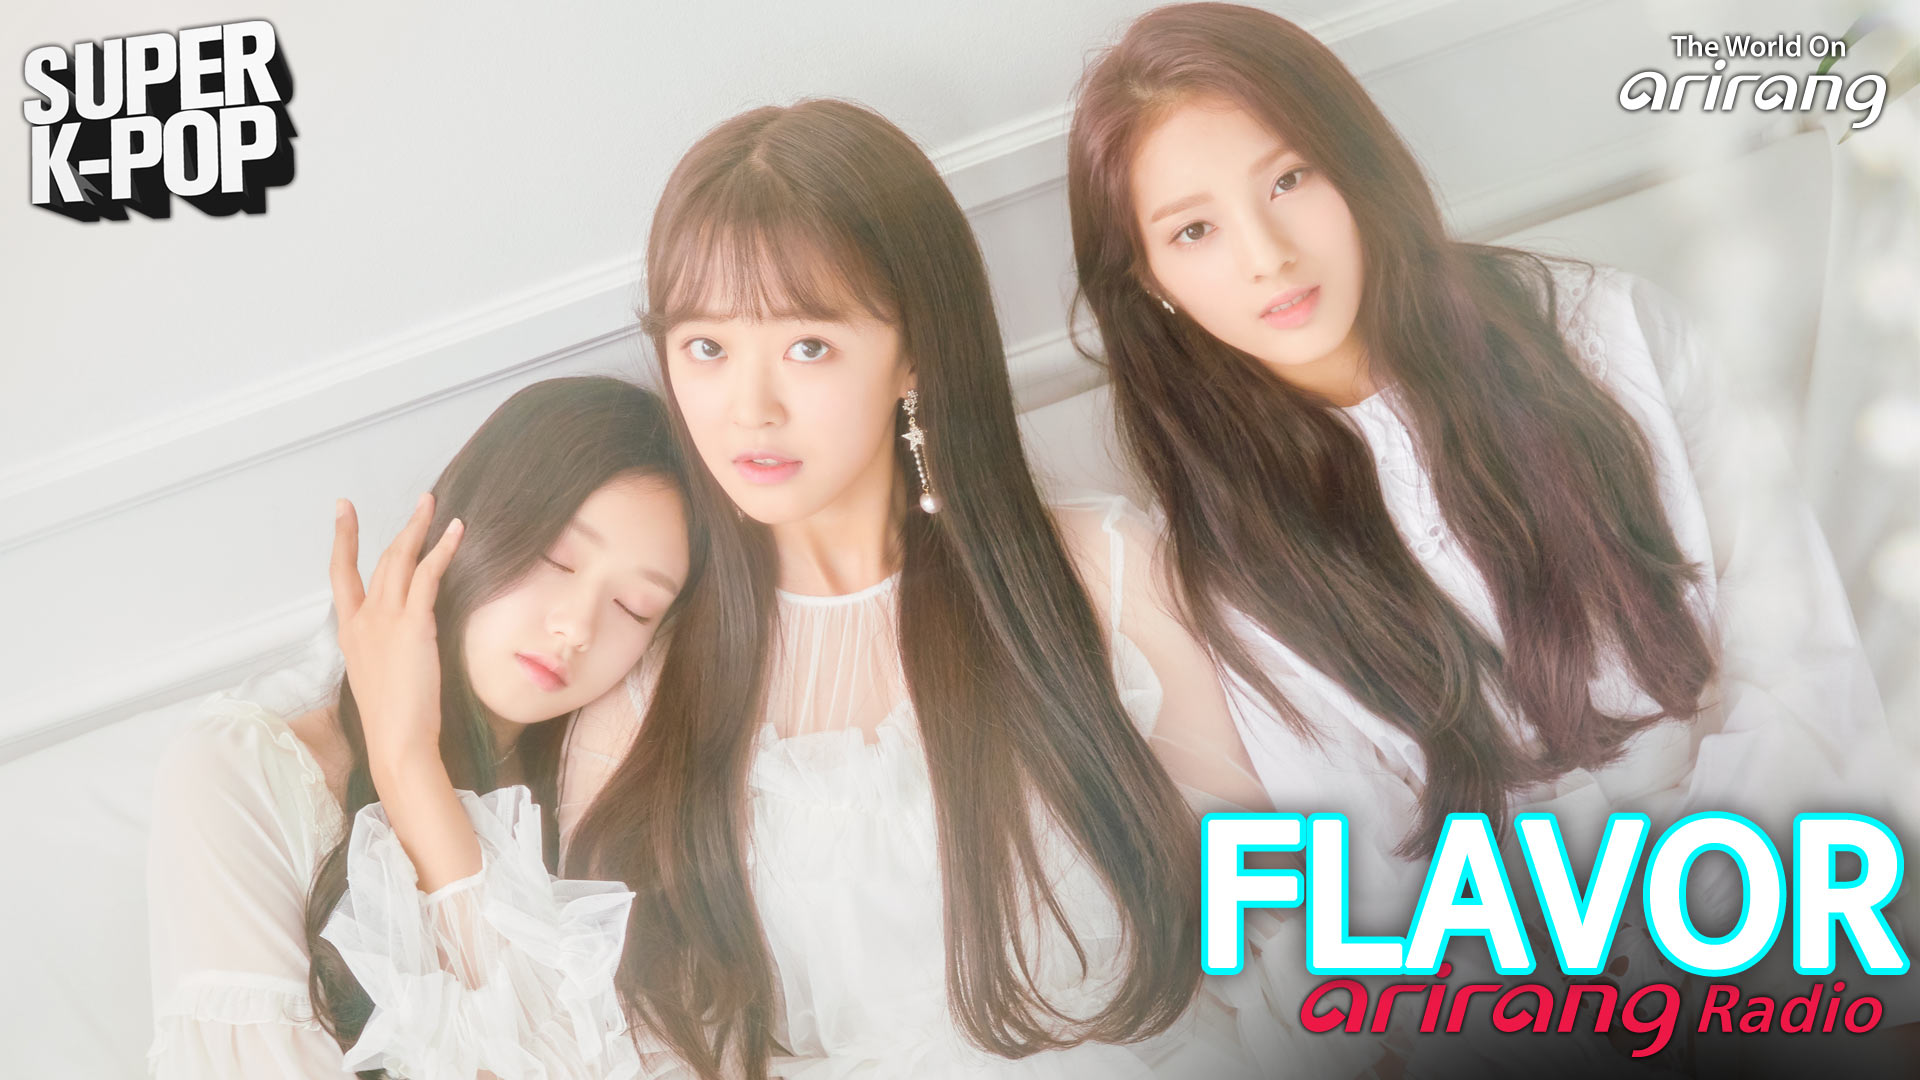 [Super K-Pop] 플레이버 (FLAVOR)'s Full Interview on Arirang Radio!